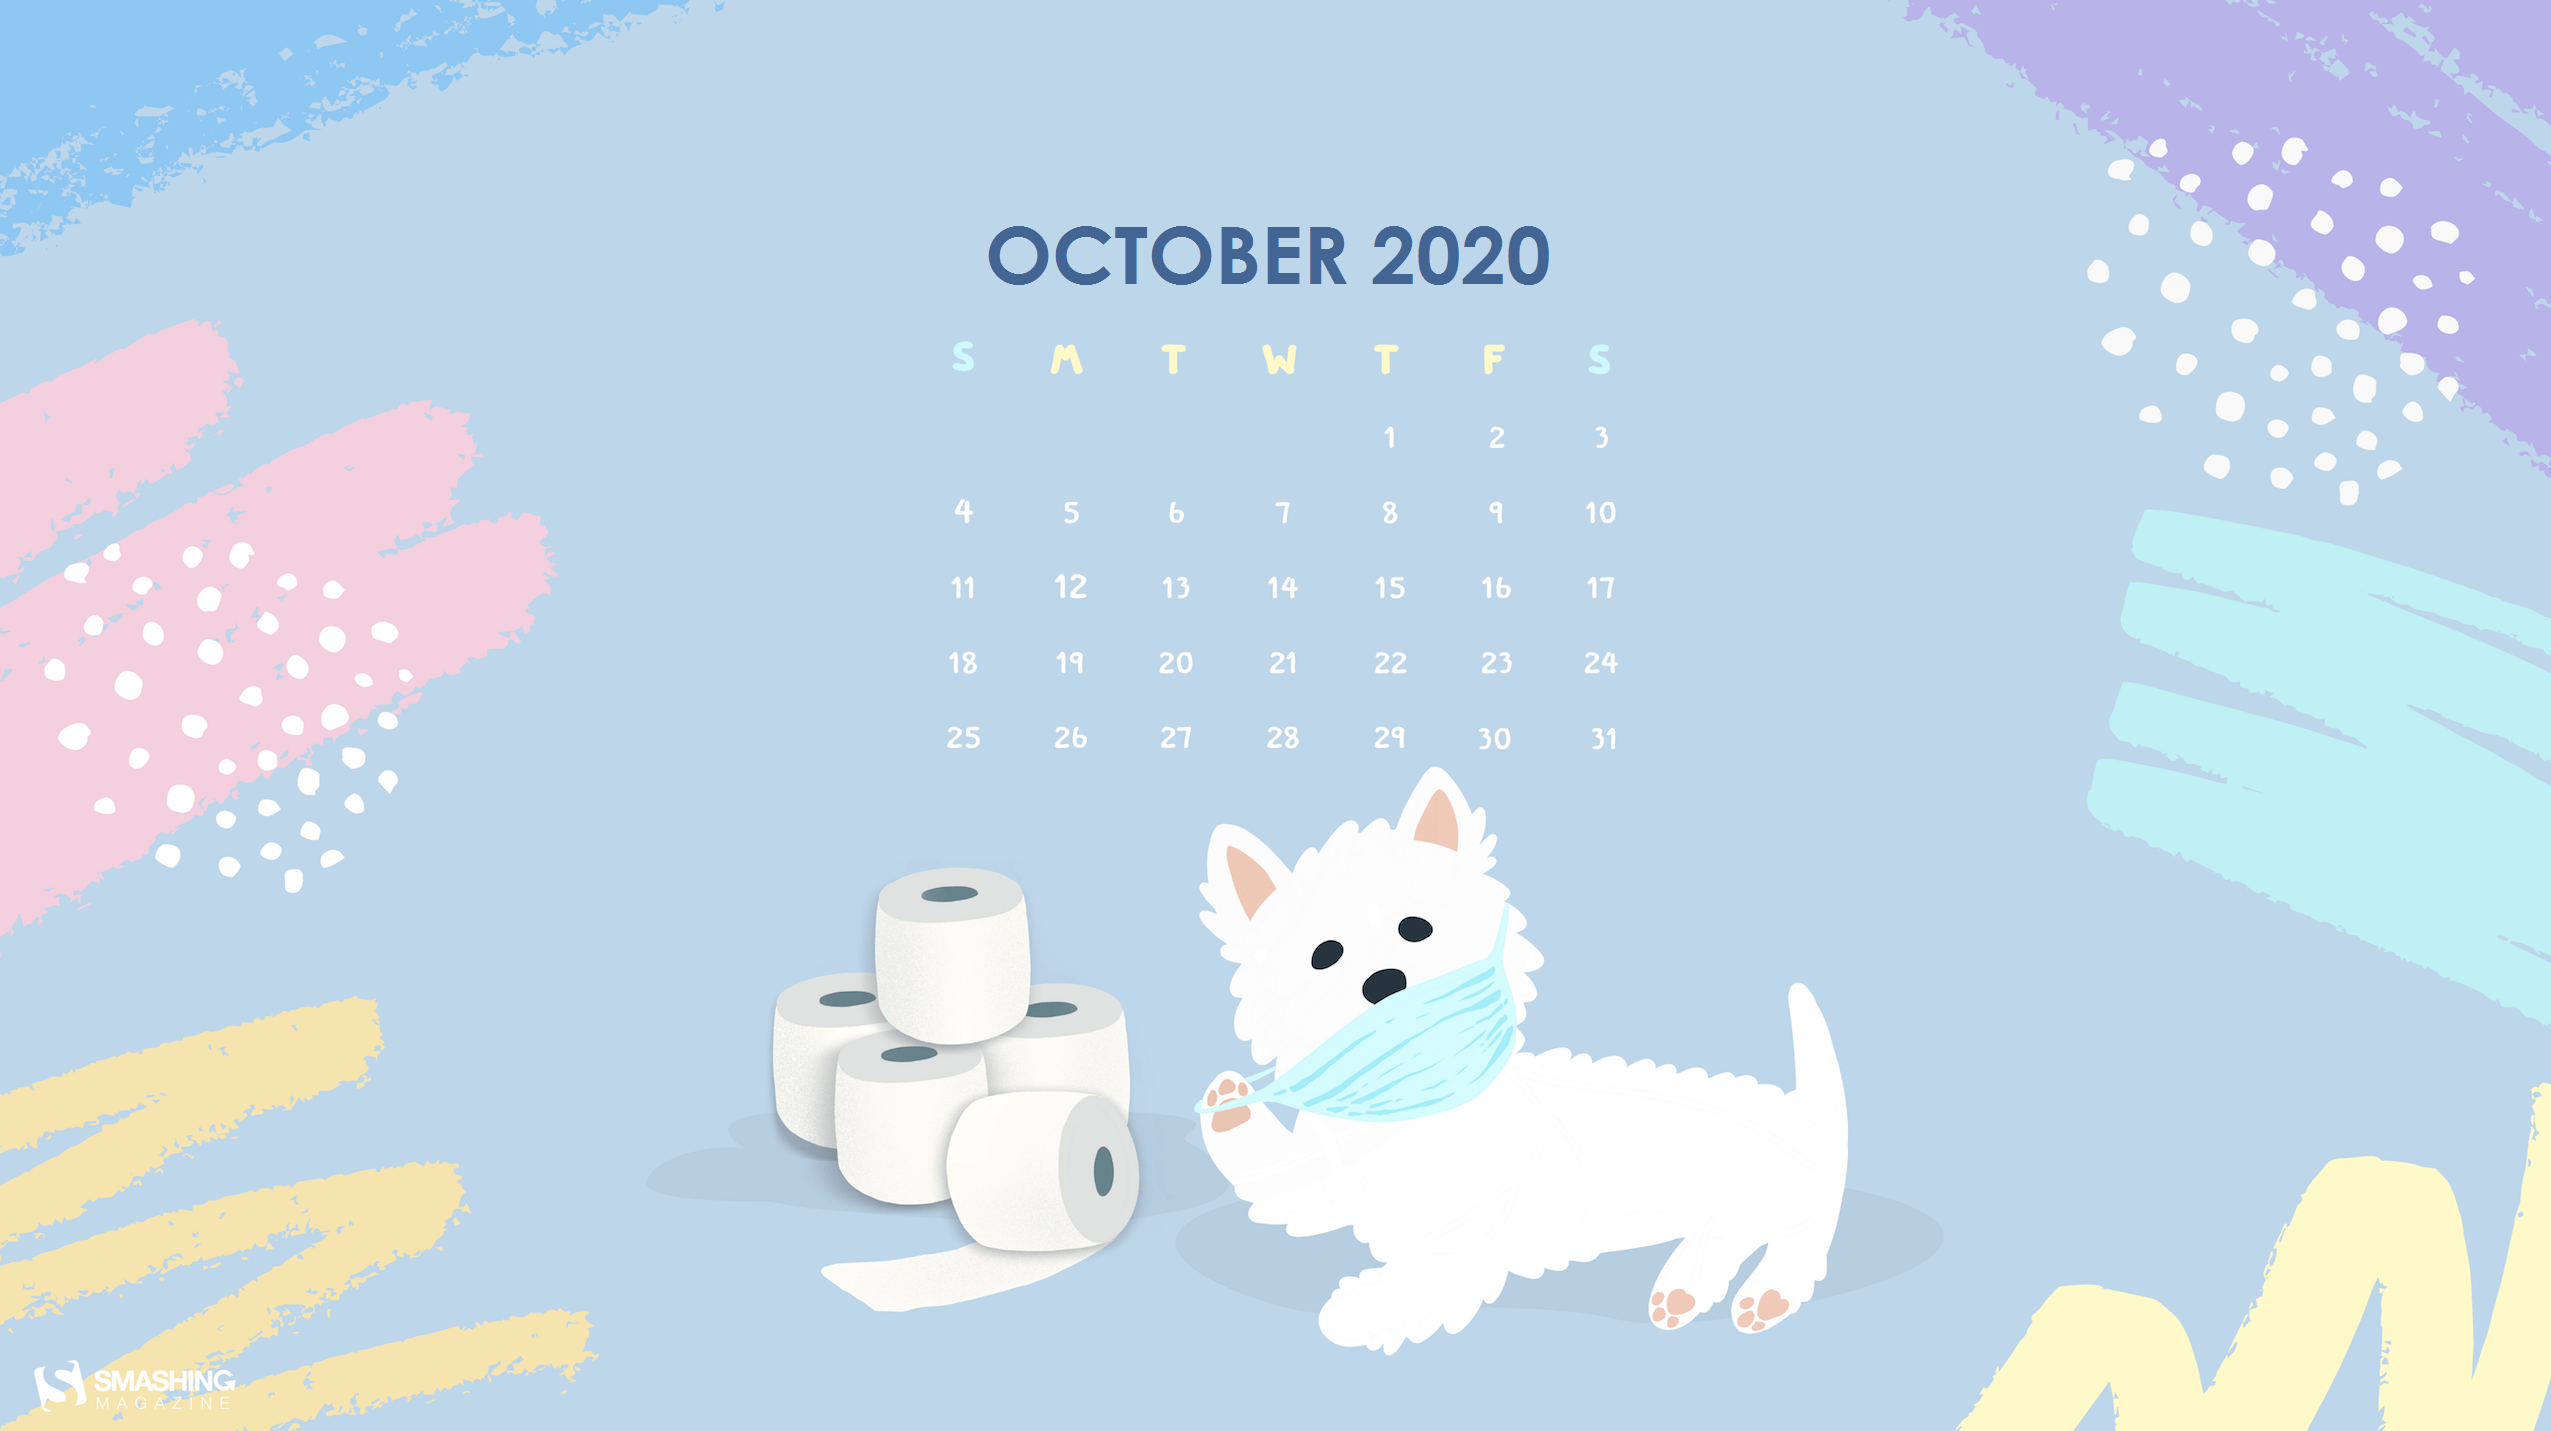 Cute October 2020 Wallpaper Calendar